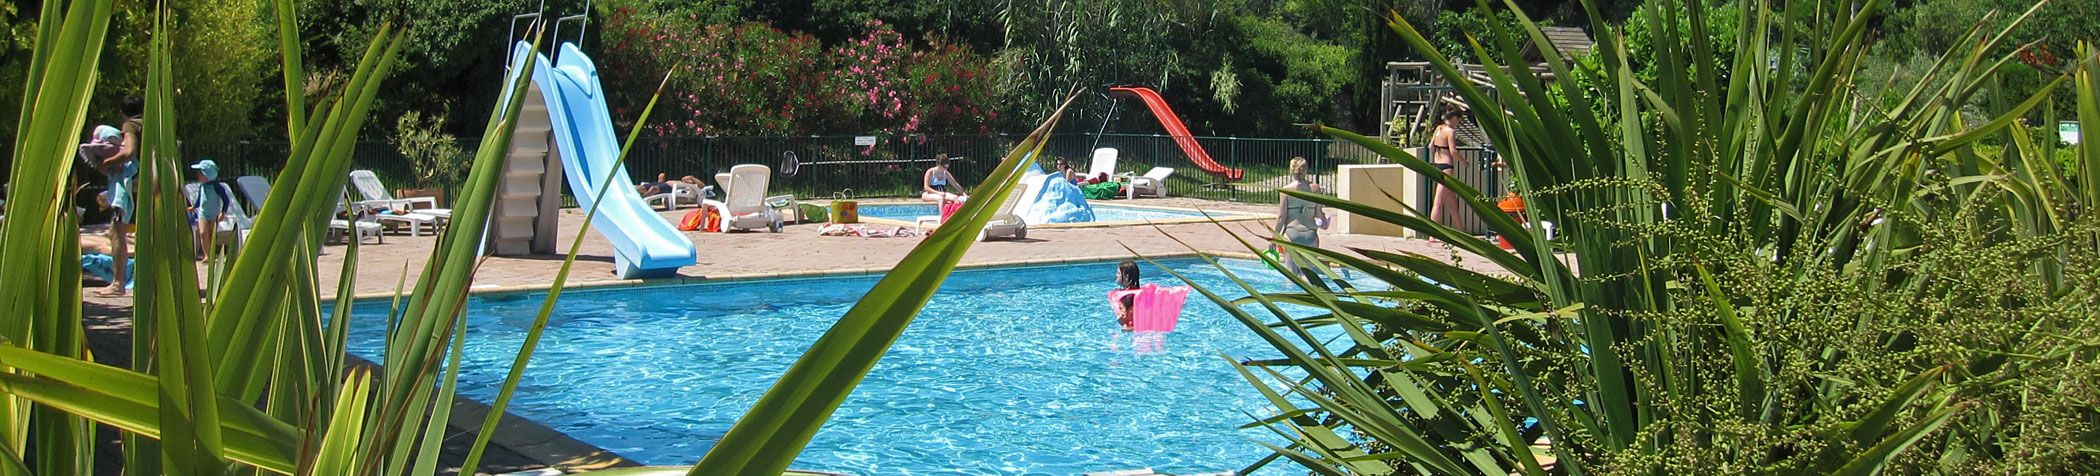 Photos du camping le pontet 3 toiles camping avec for Piscine le pontet